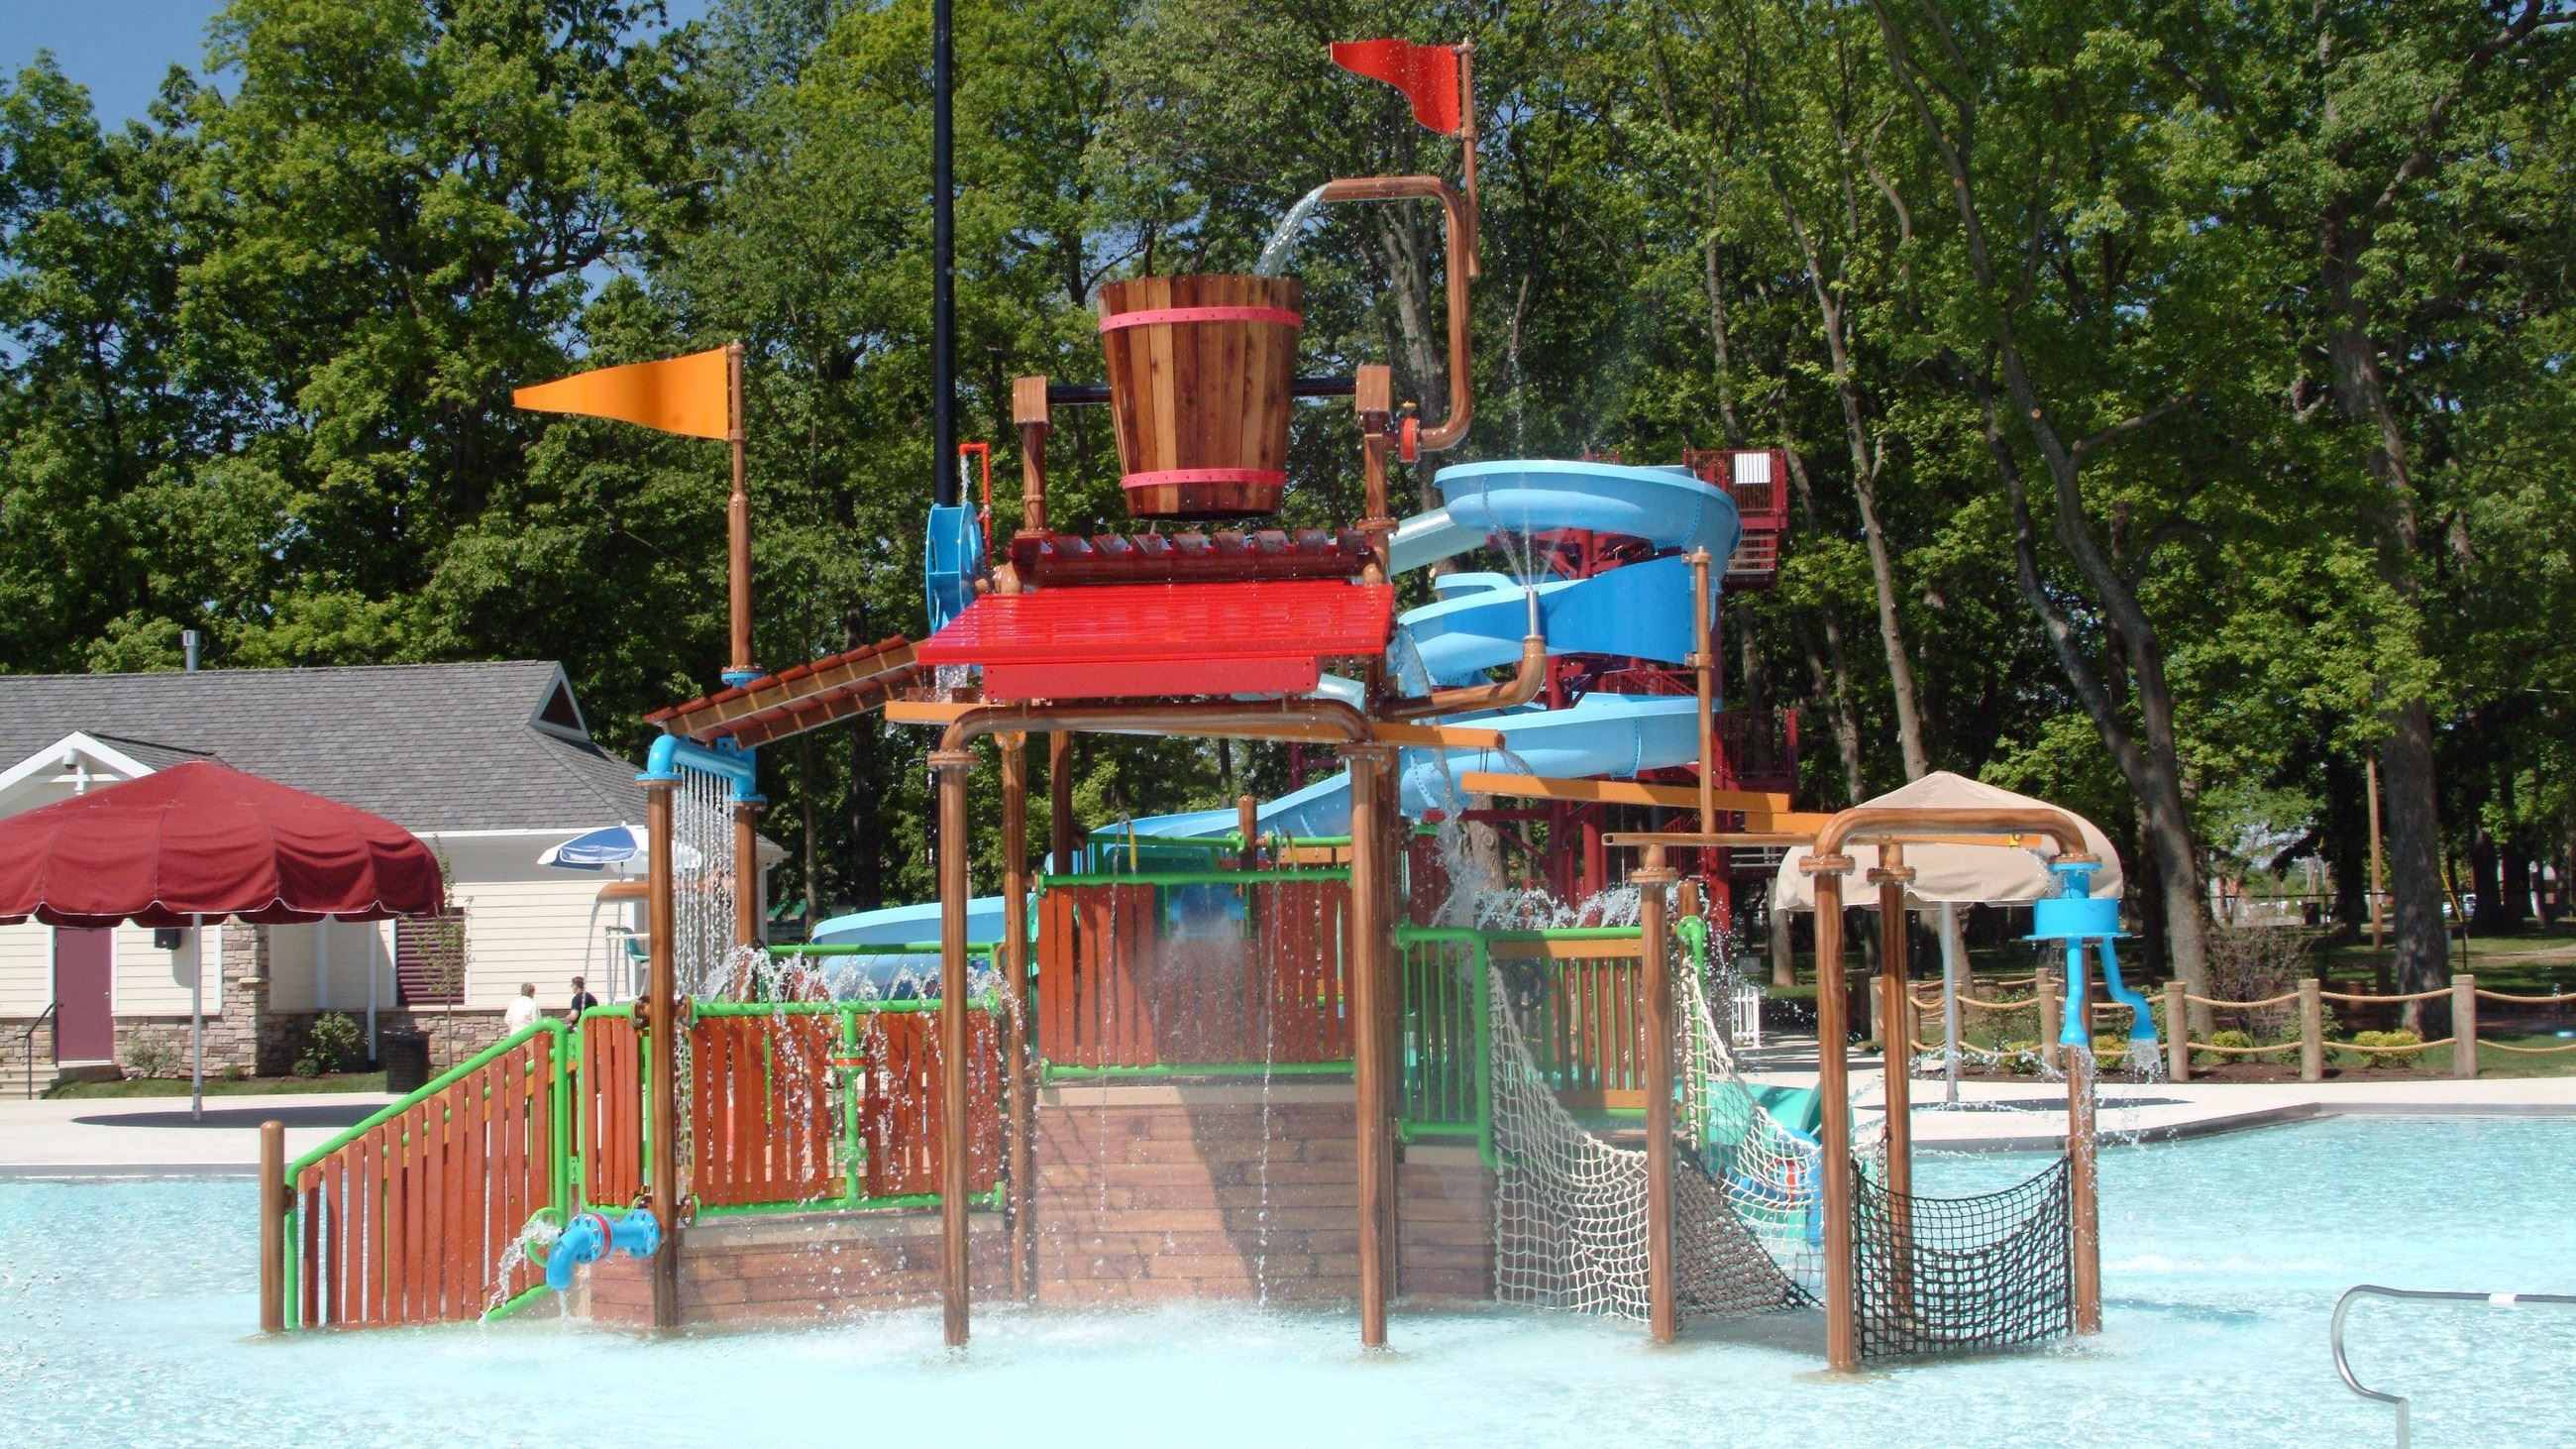 Swimming pool passes tipp city oh - Is there sales tax on swimming pools ...